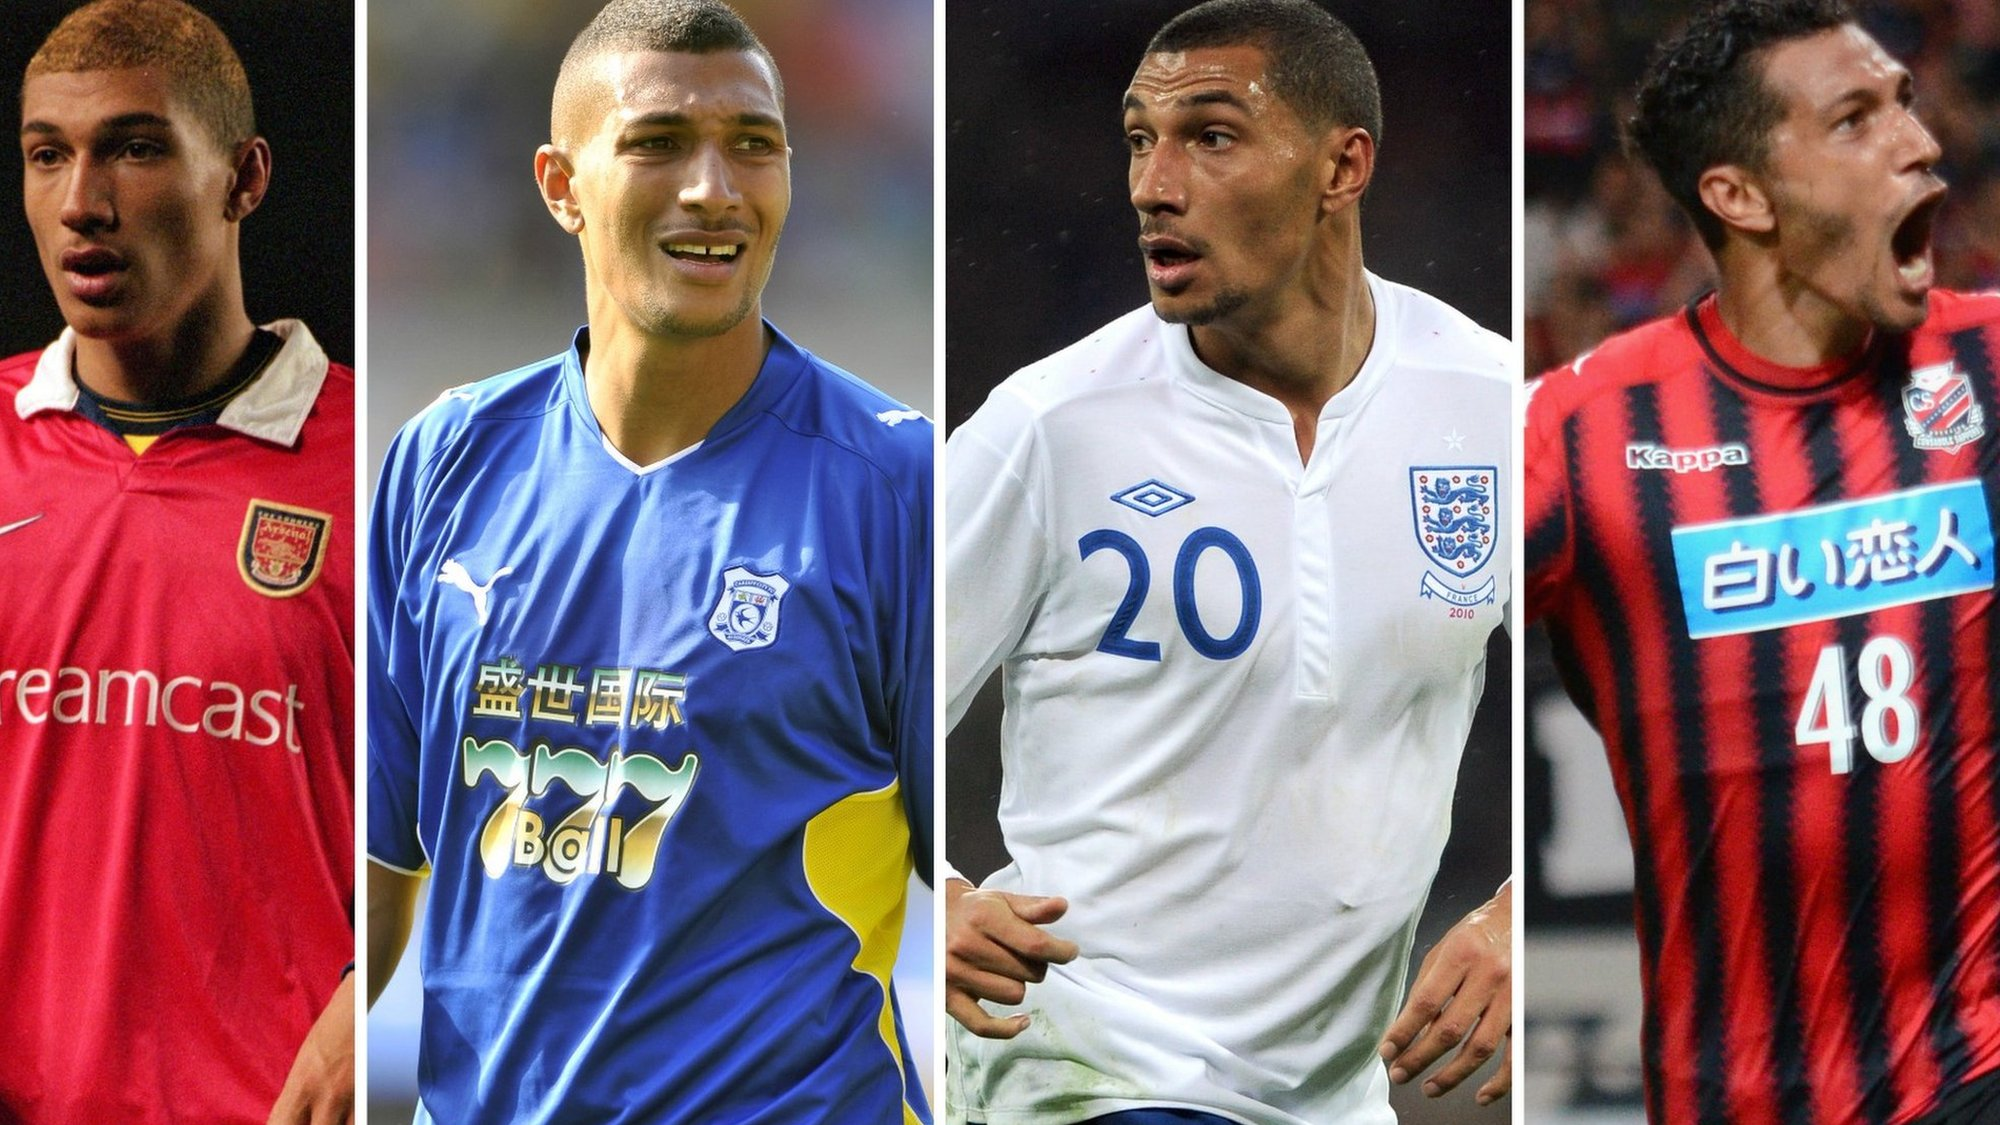 Jay Bothroyd: Former England striker on playing in Japan, his one cap and epilepsy